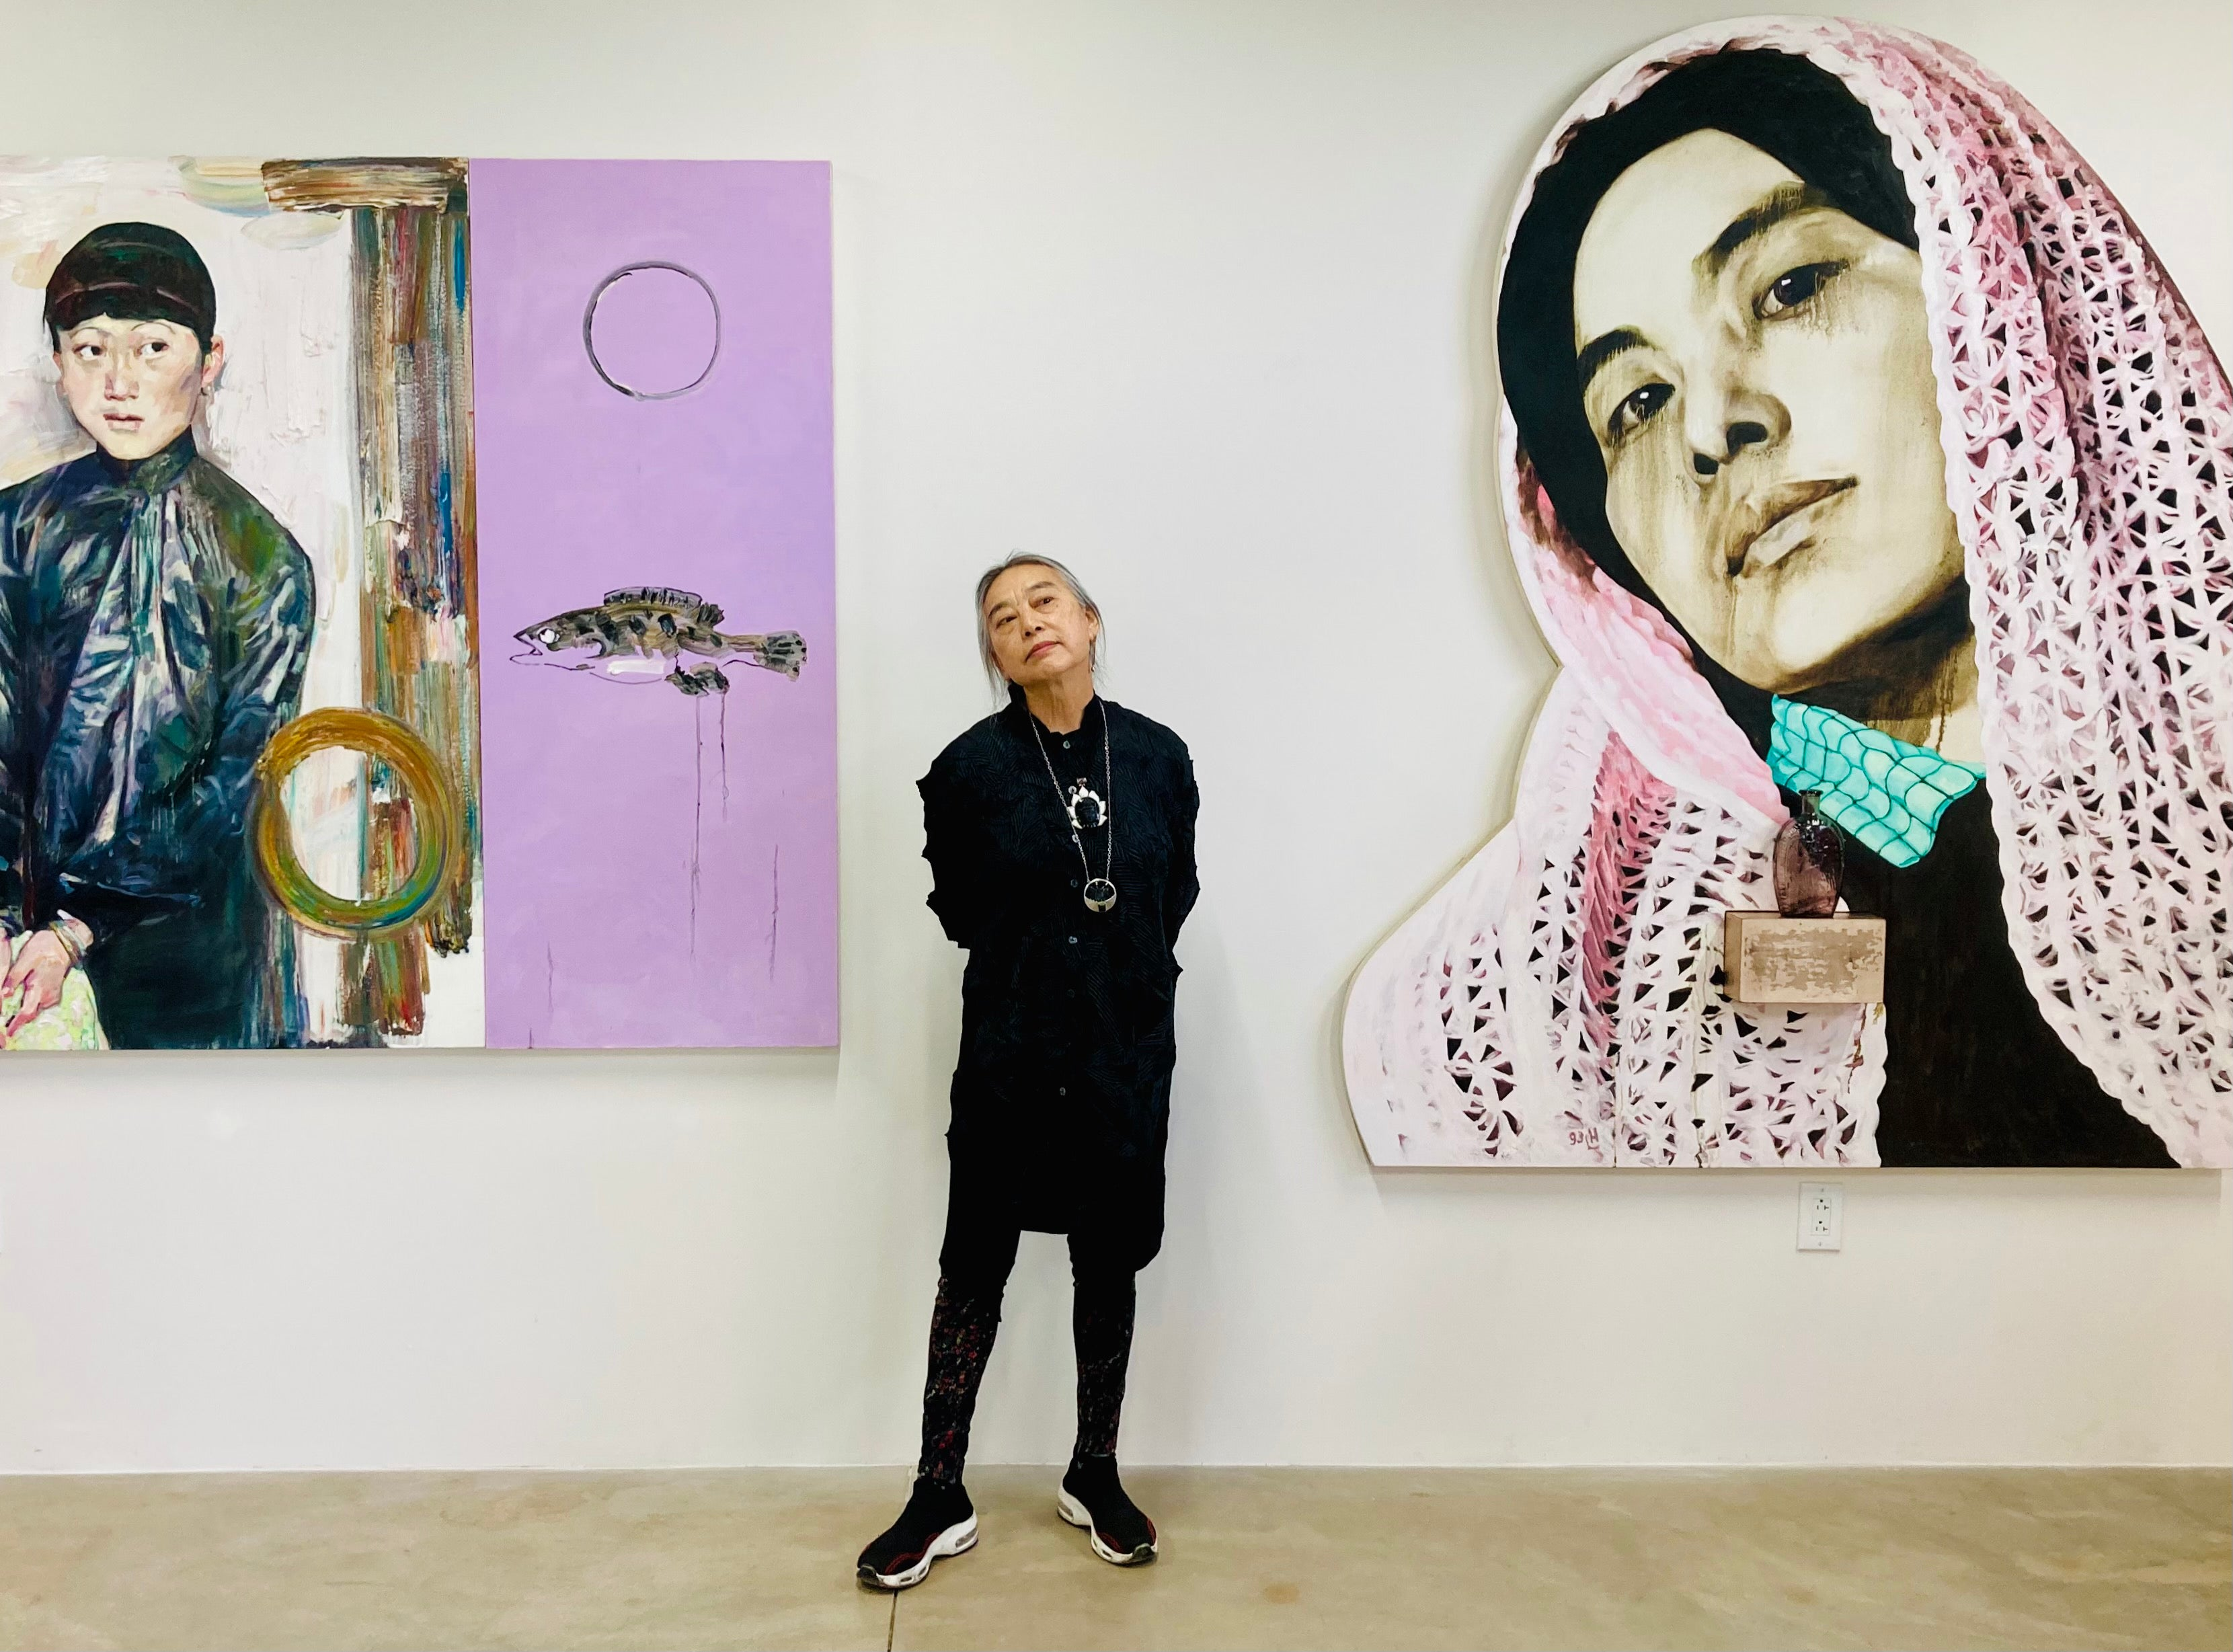 Hung Liu portrait at Pie Projects, July 17th, 2021